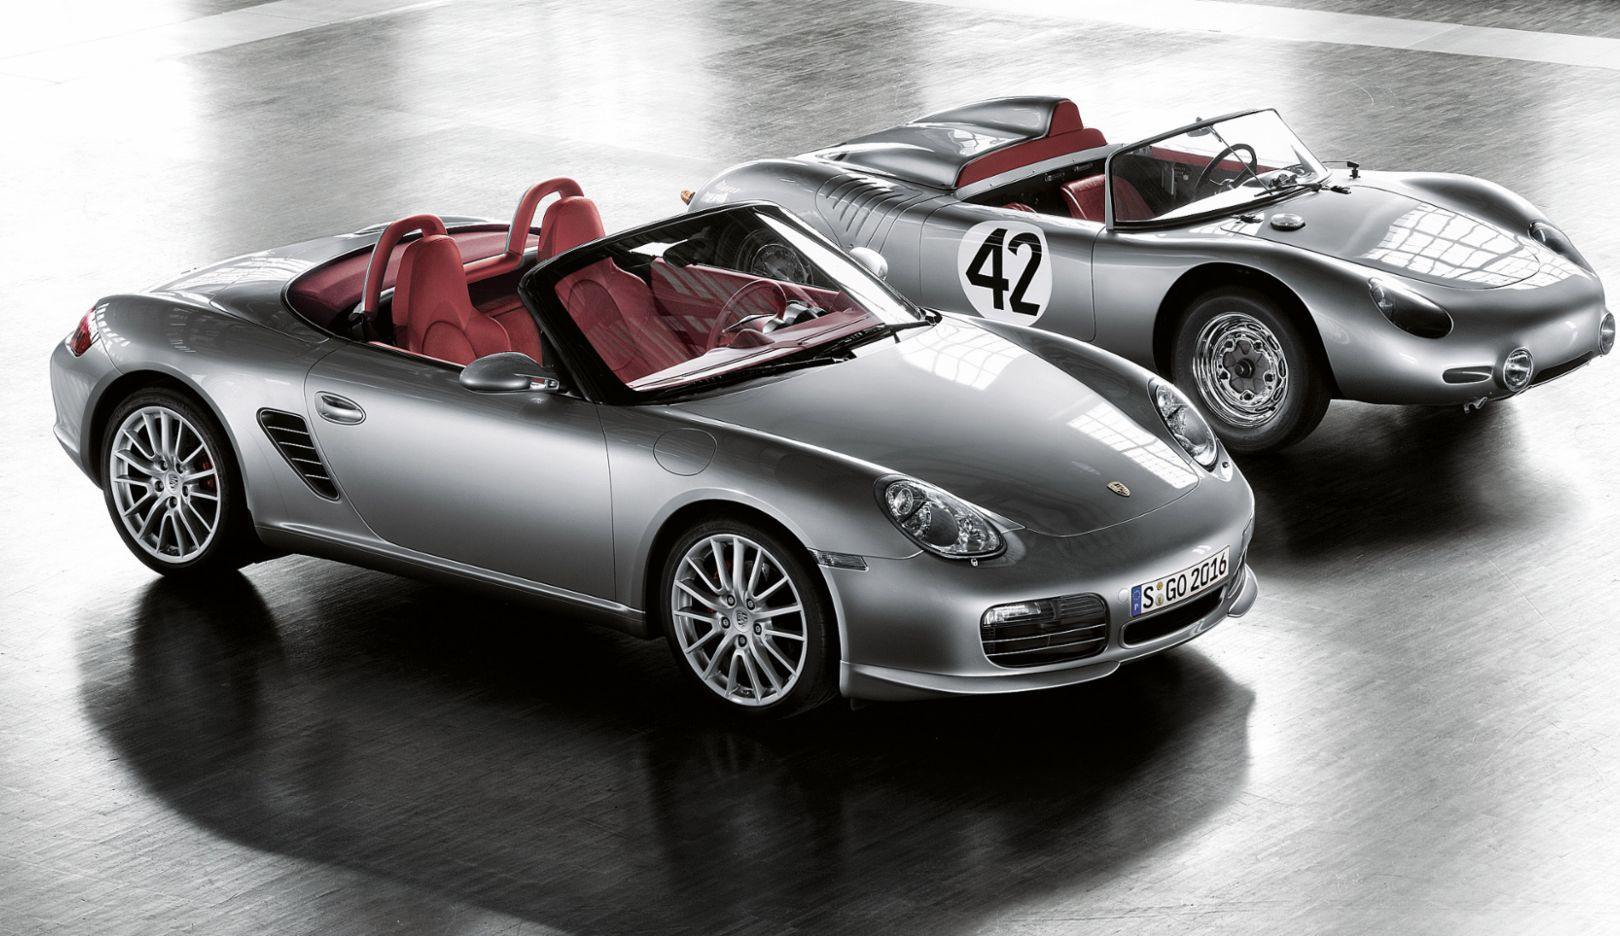 987 generation: Boxster RS 60 Spyder special edition (2007). With another exclusive special series of the Boxster S, Porsche commemorates Hans Herrmann and Olivier Gendebien's historic triumph in 1960 at the twelve-hour race in Sebring, Florida. The Boxster RS 60 Spyder makes its début in March 2008, shortly after Hans Herrmann's eightieth birthday.